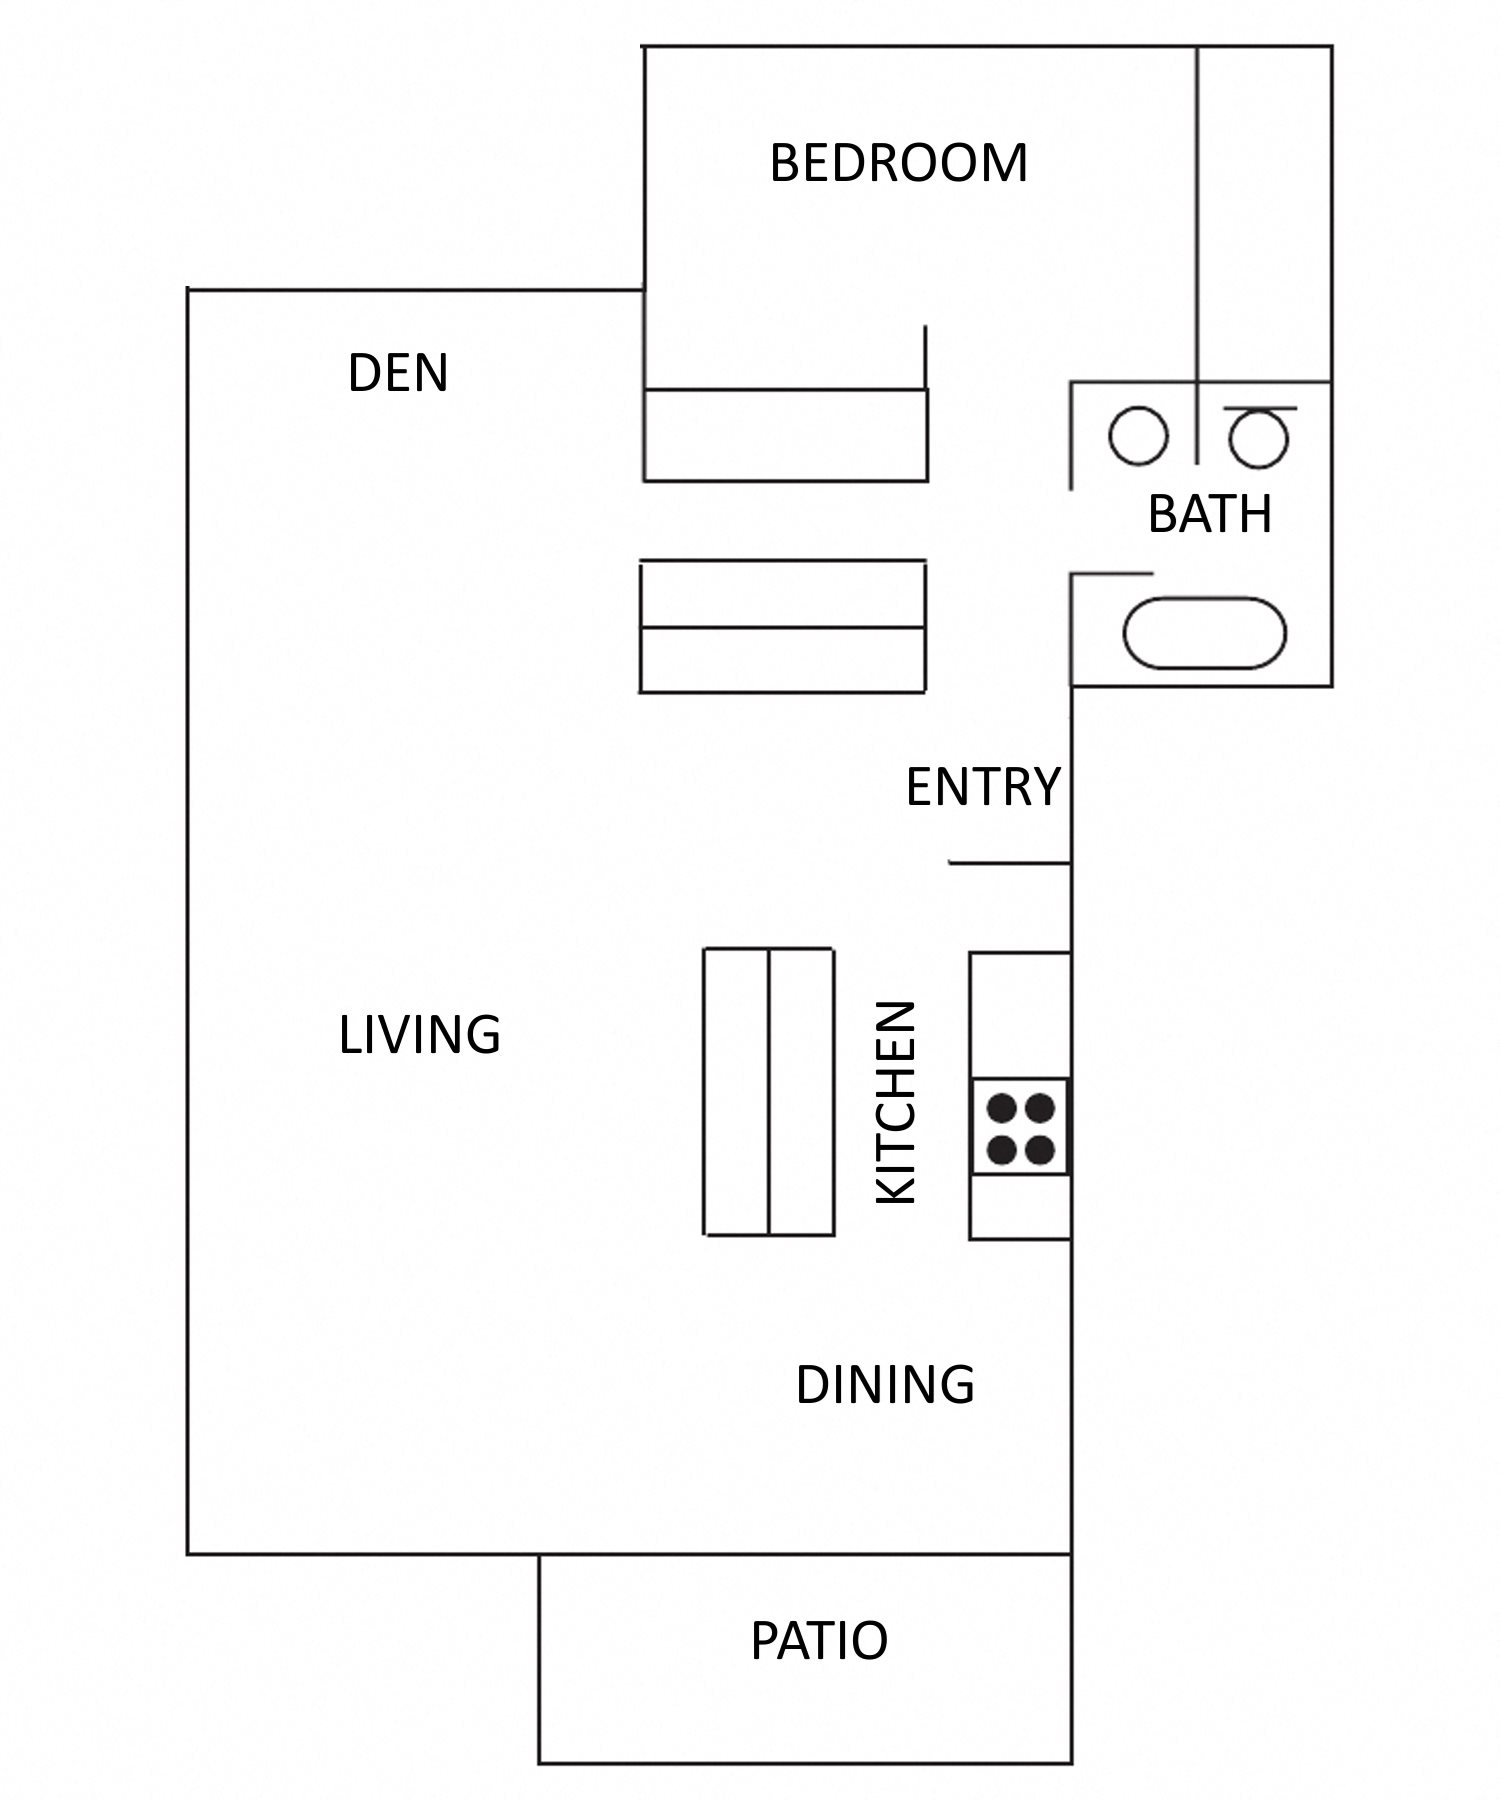 1 Bedroom 1 Bath Flat w/Den Floor Plan 3